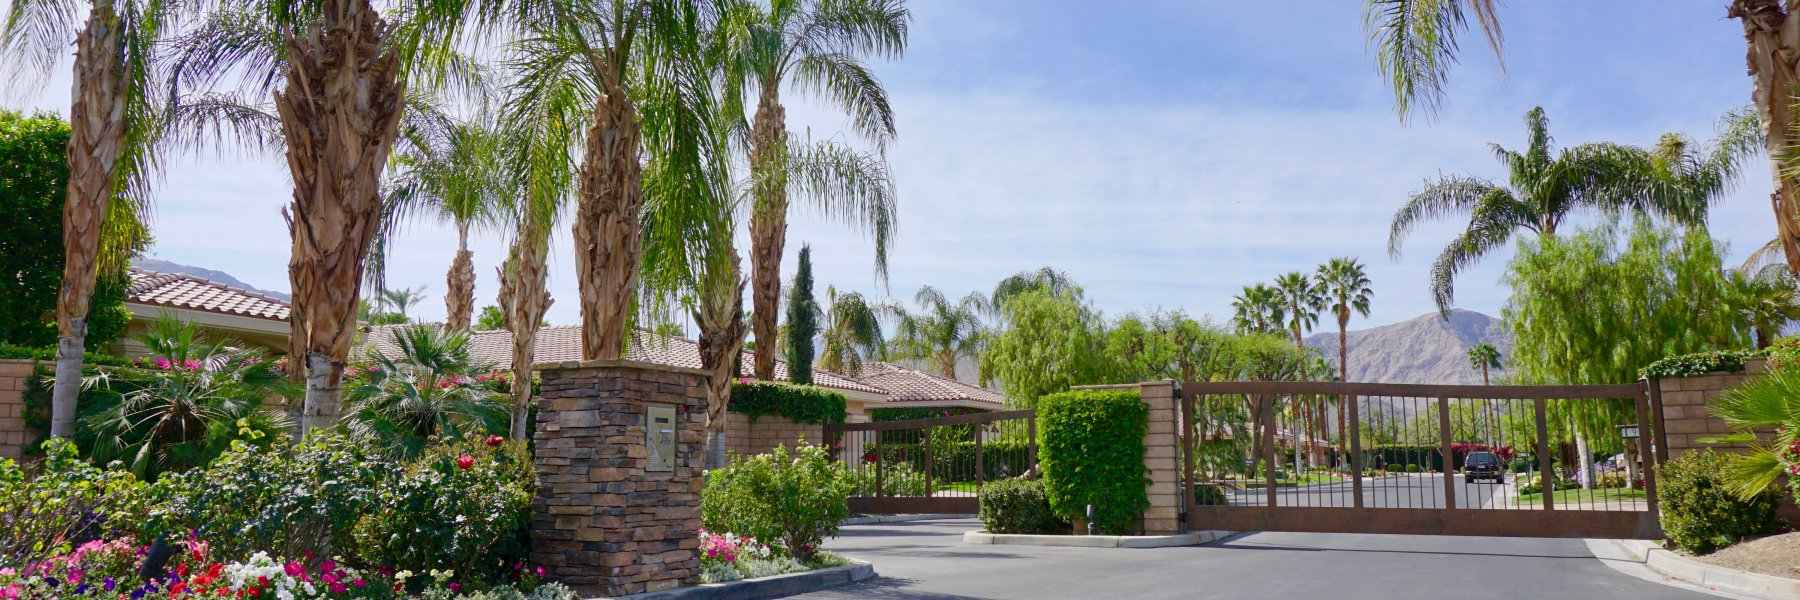 Ivy League Estates is a community of homes in Rancho Mirage California